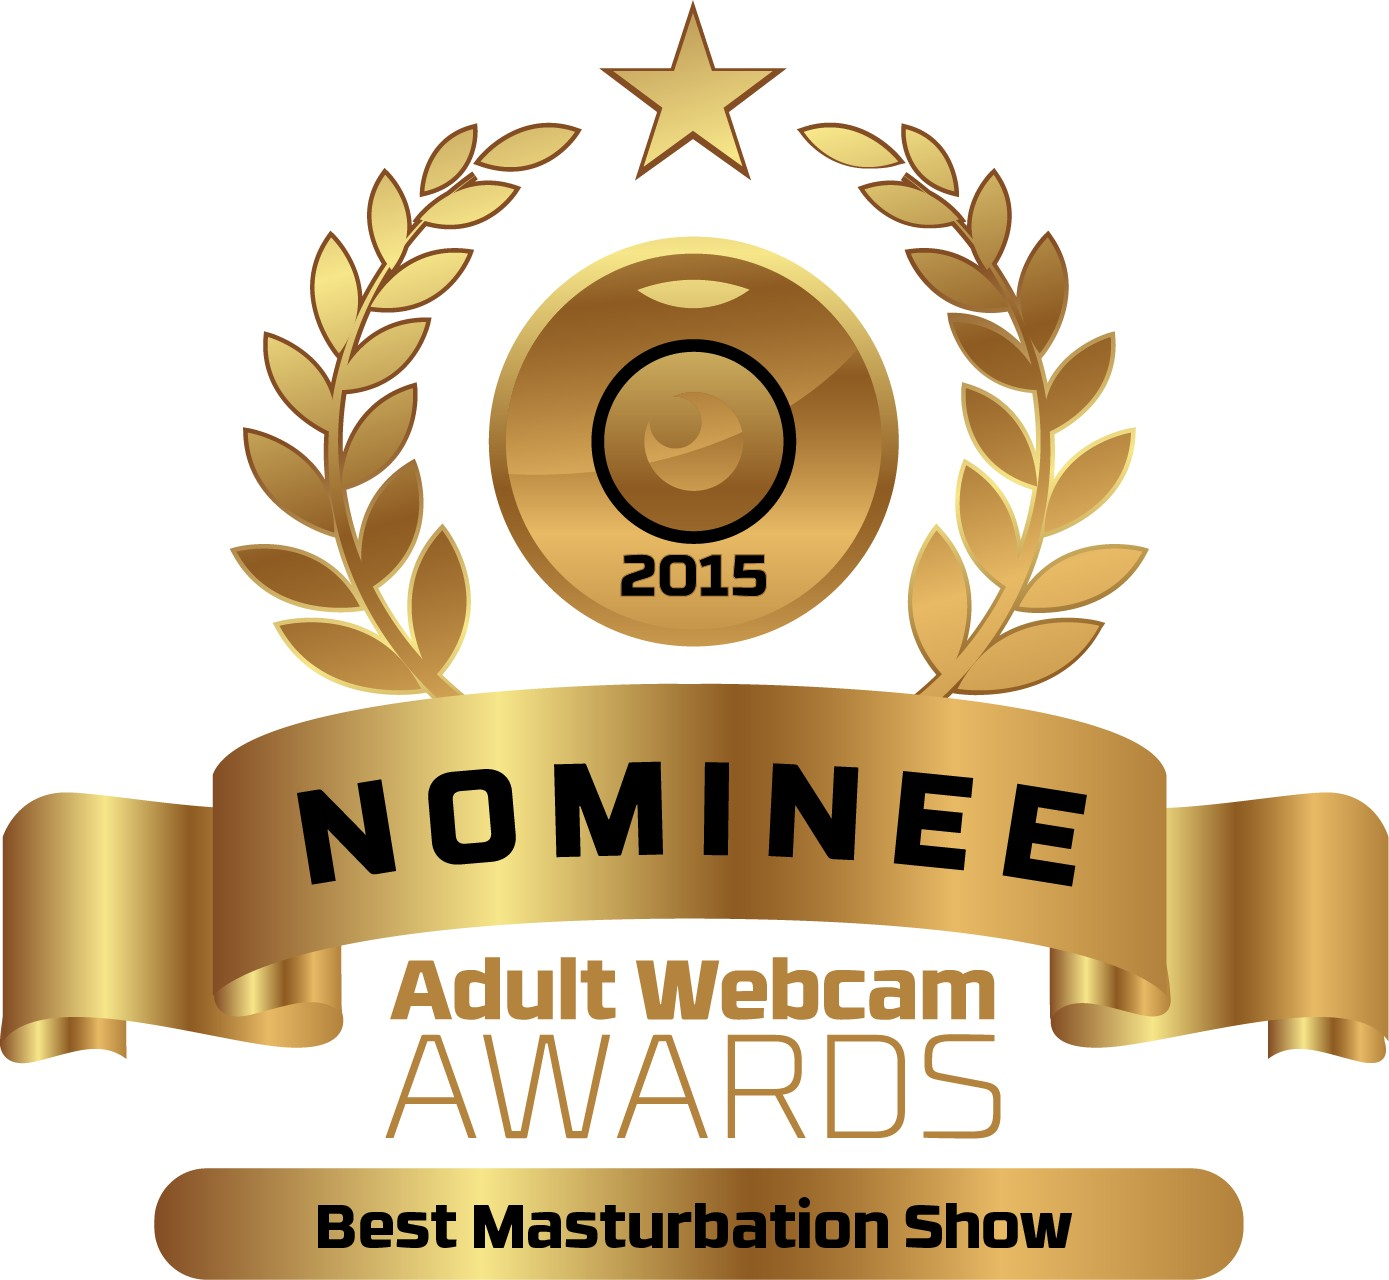 Best masturbation show nominee